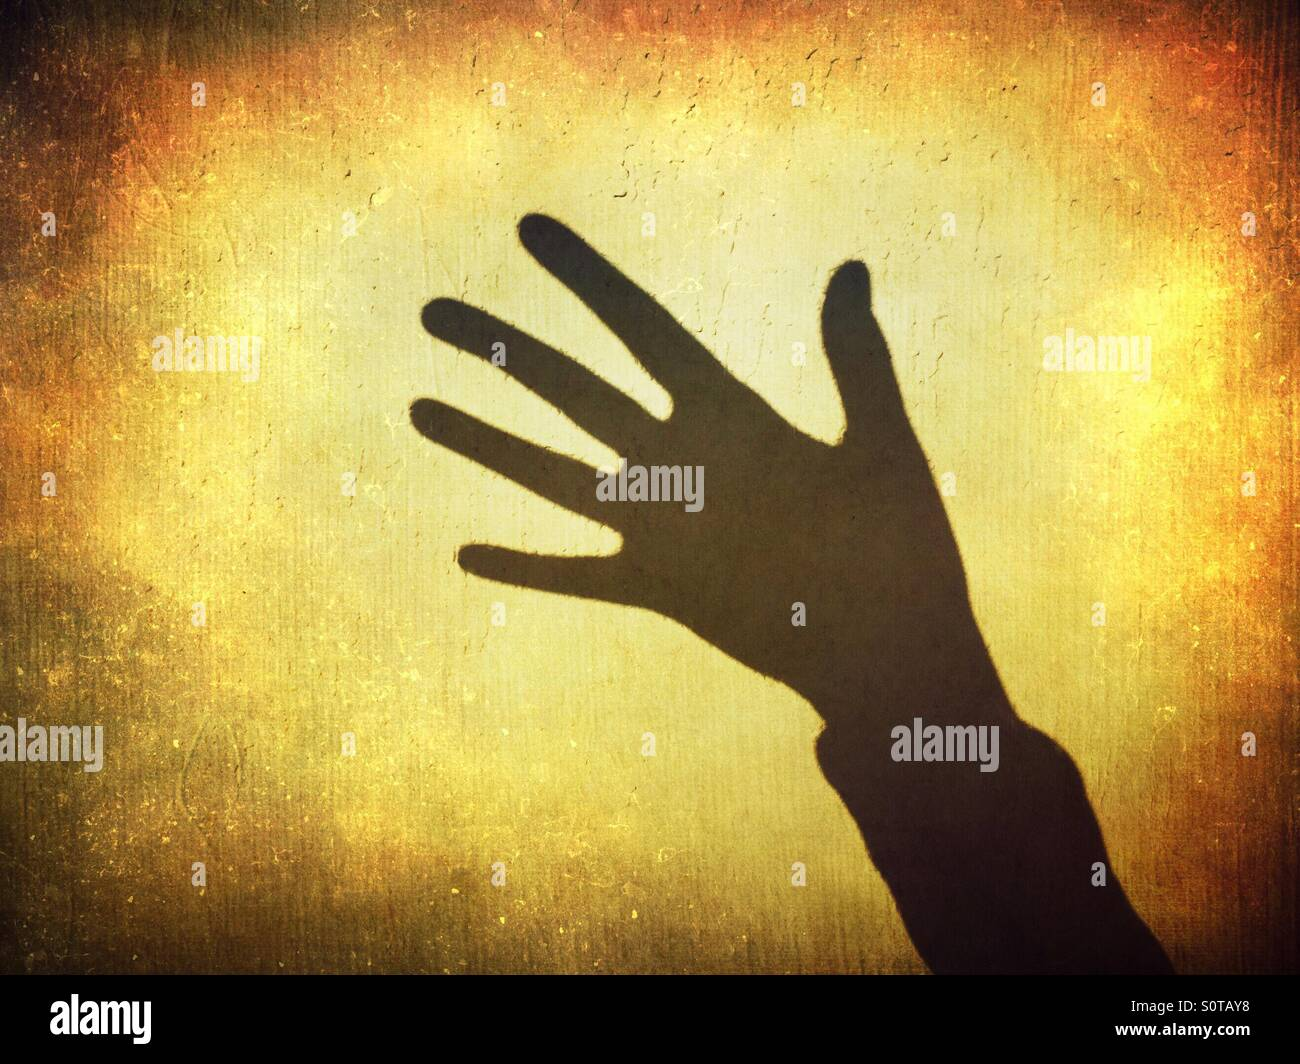 Shadow of a hand showing five fingers - Stock Image